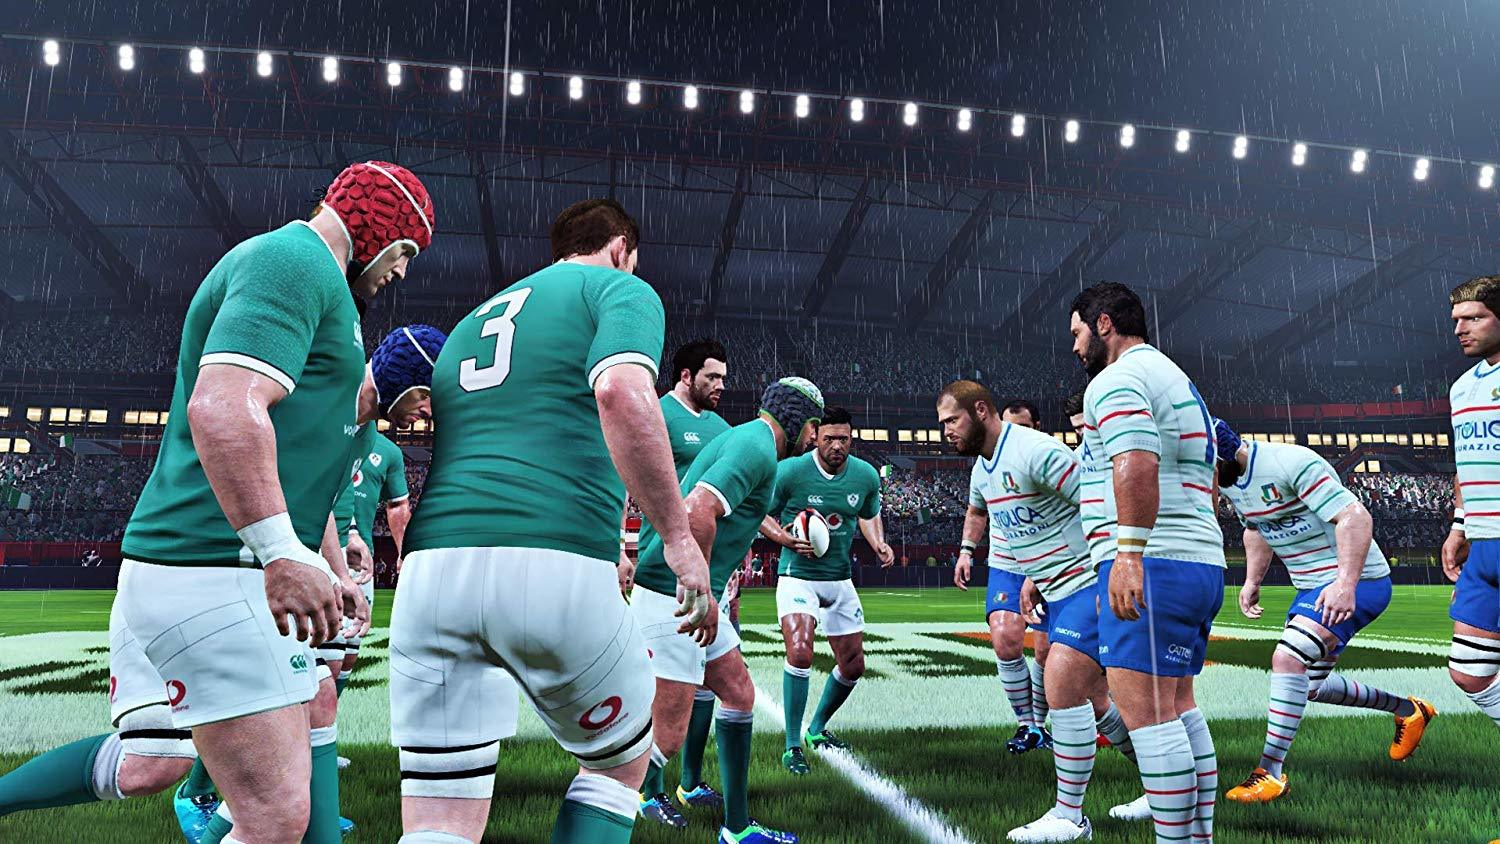 Rugby 20 - Xbox One